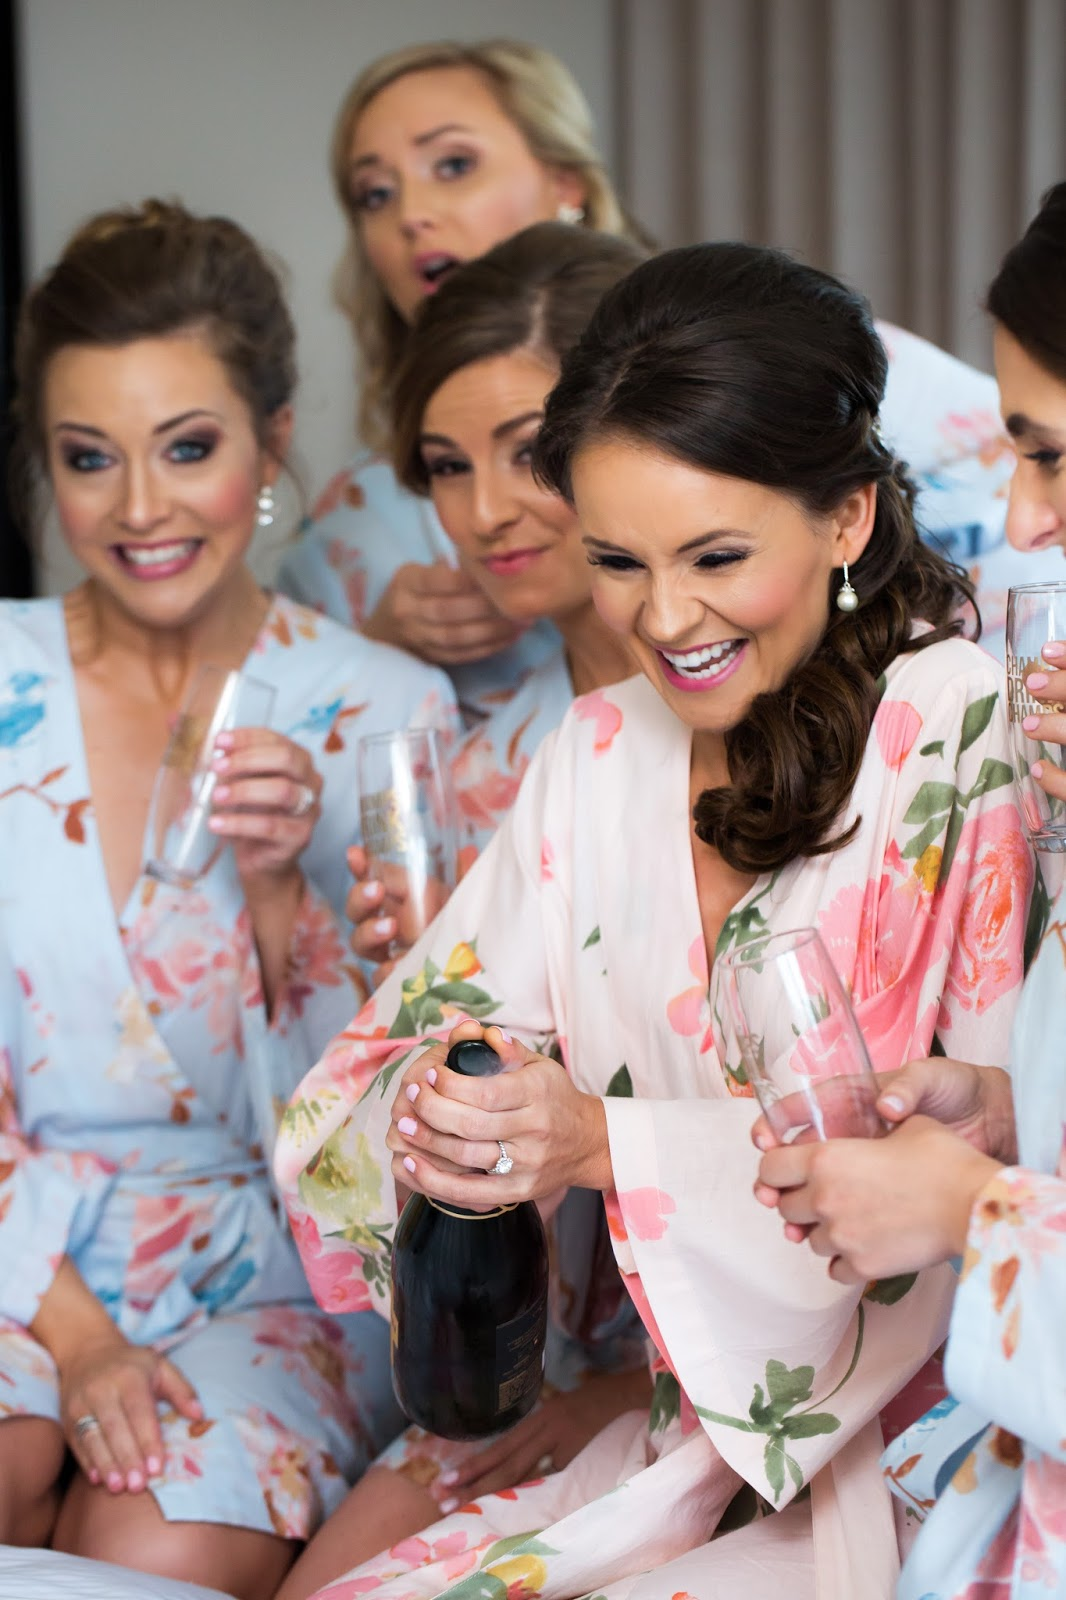 Plum Pretty Sugar bridesmaid robes, wedding day getting ready